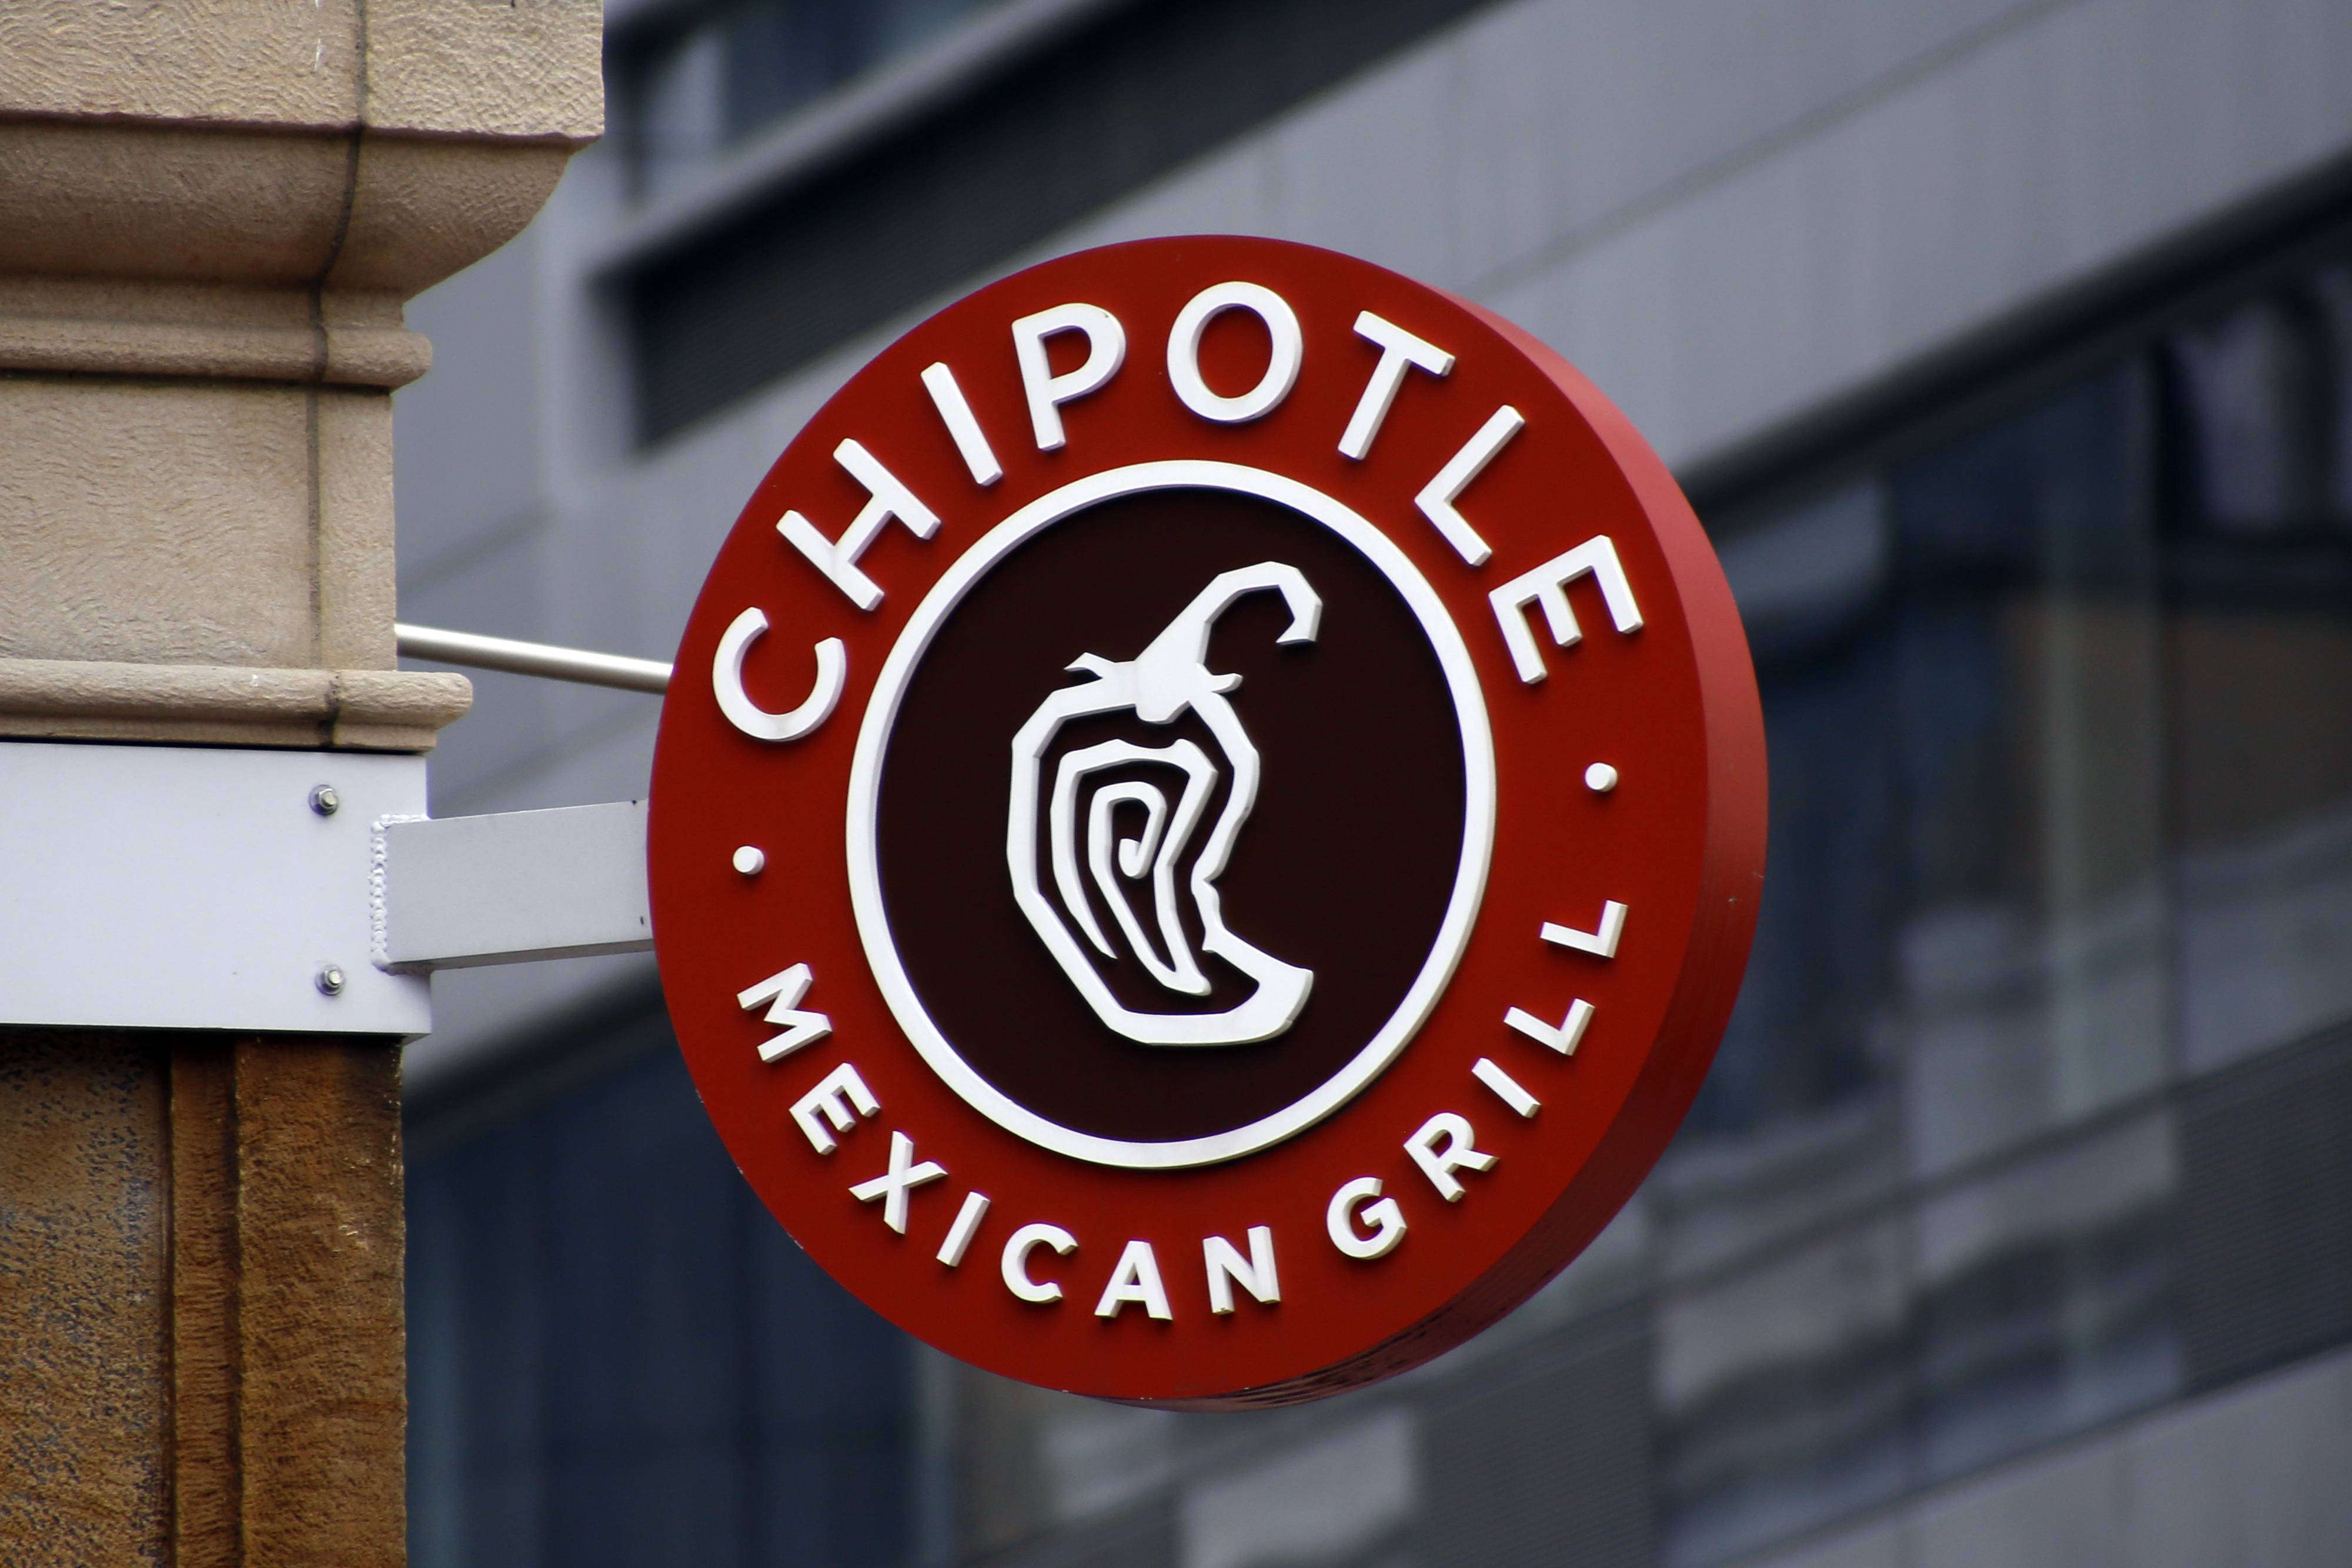 Chipotle offers delivery service for free this week